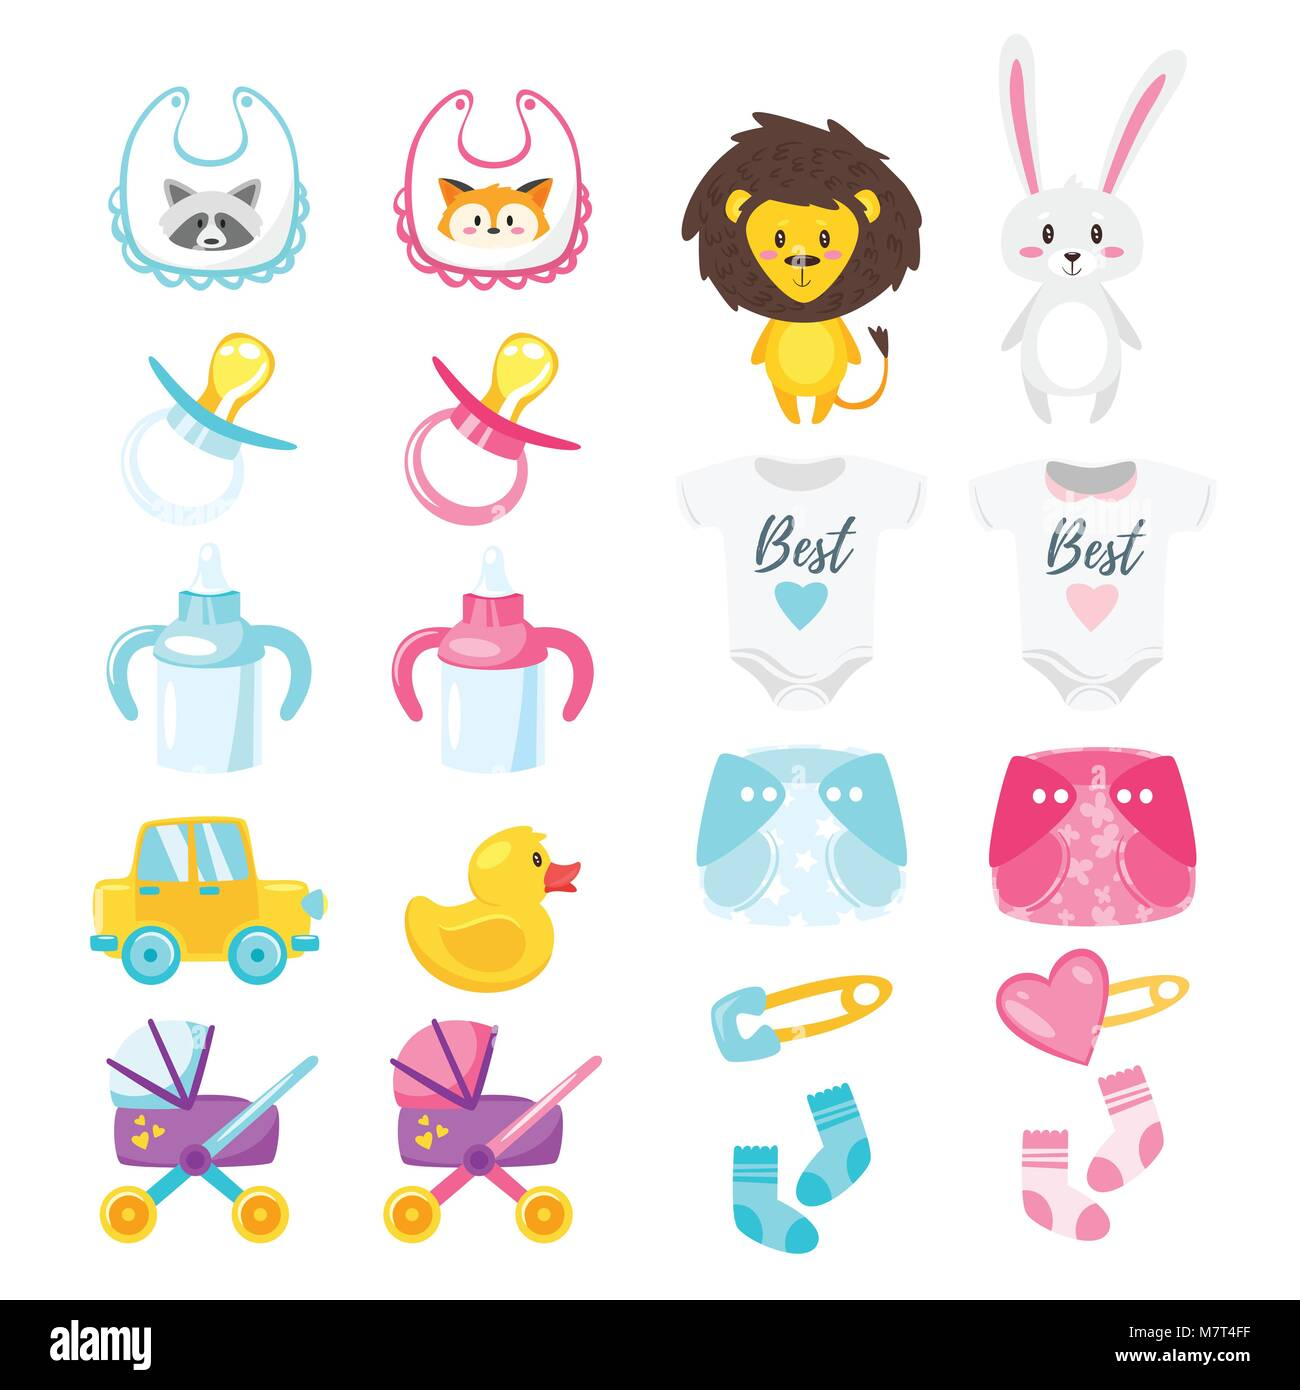 Vector cartoon style illustration of baby shower set of symbols vector cartoon style illustration of baby shower set of symbols for boy and girl newborn design elements and icons isolated on white background biocorpaavc Images